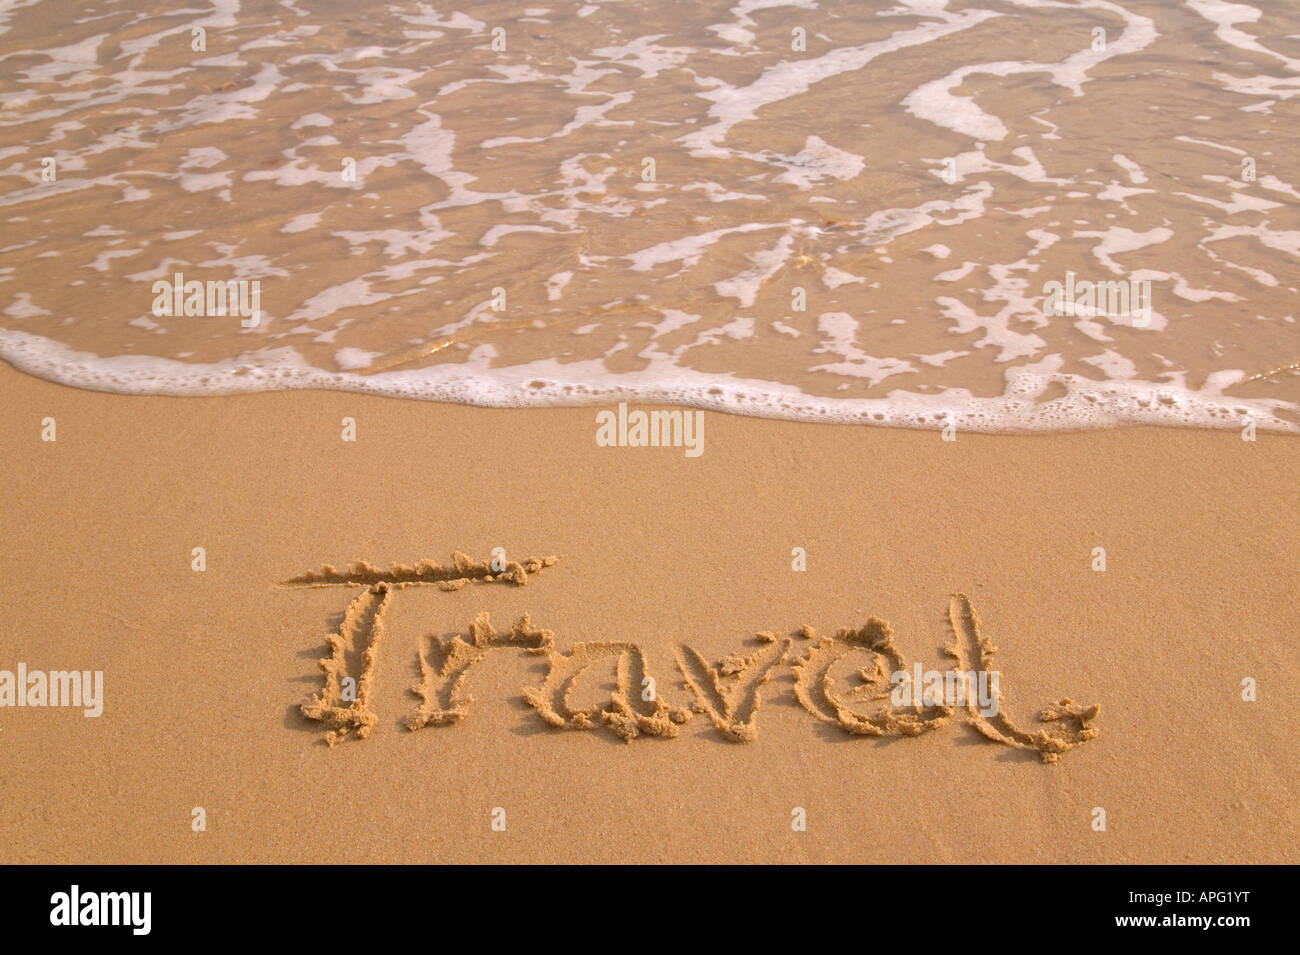 Travel written in sand on the shoreline of a golden sandy beach - Stock Image